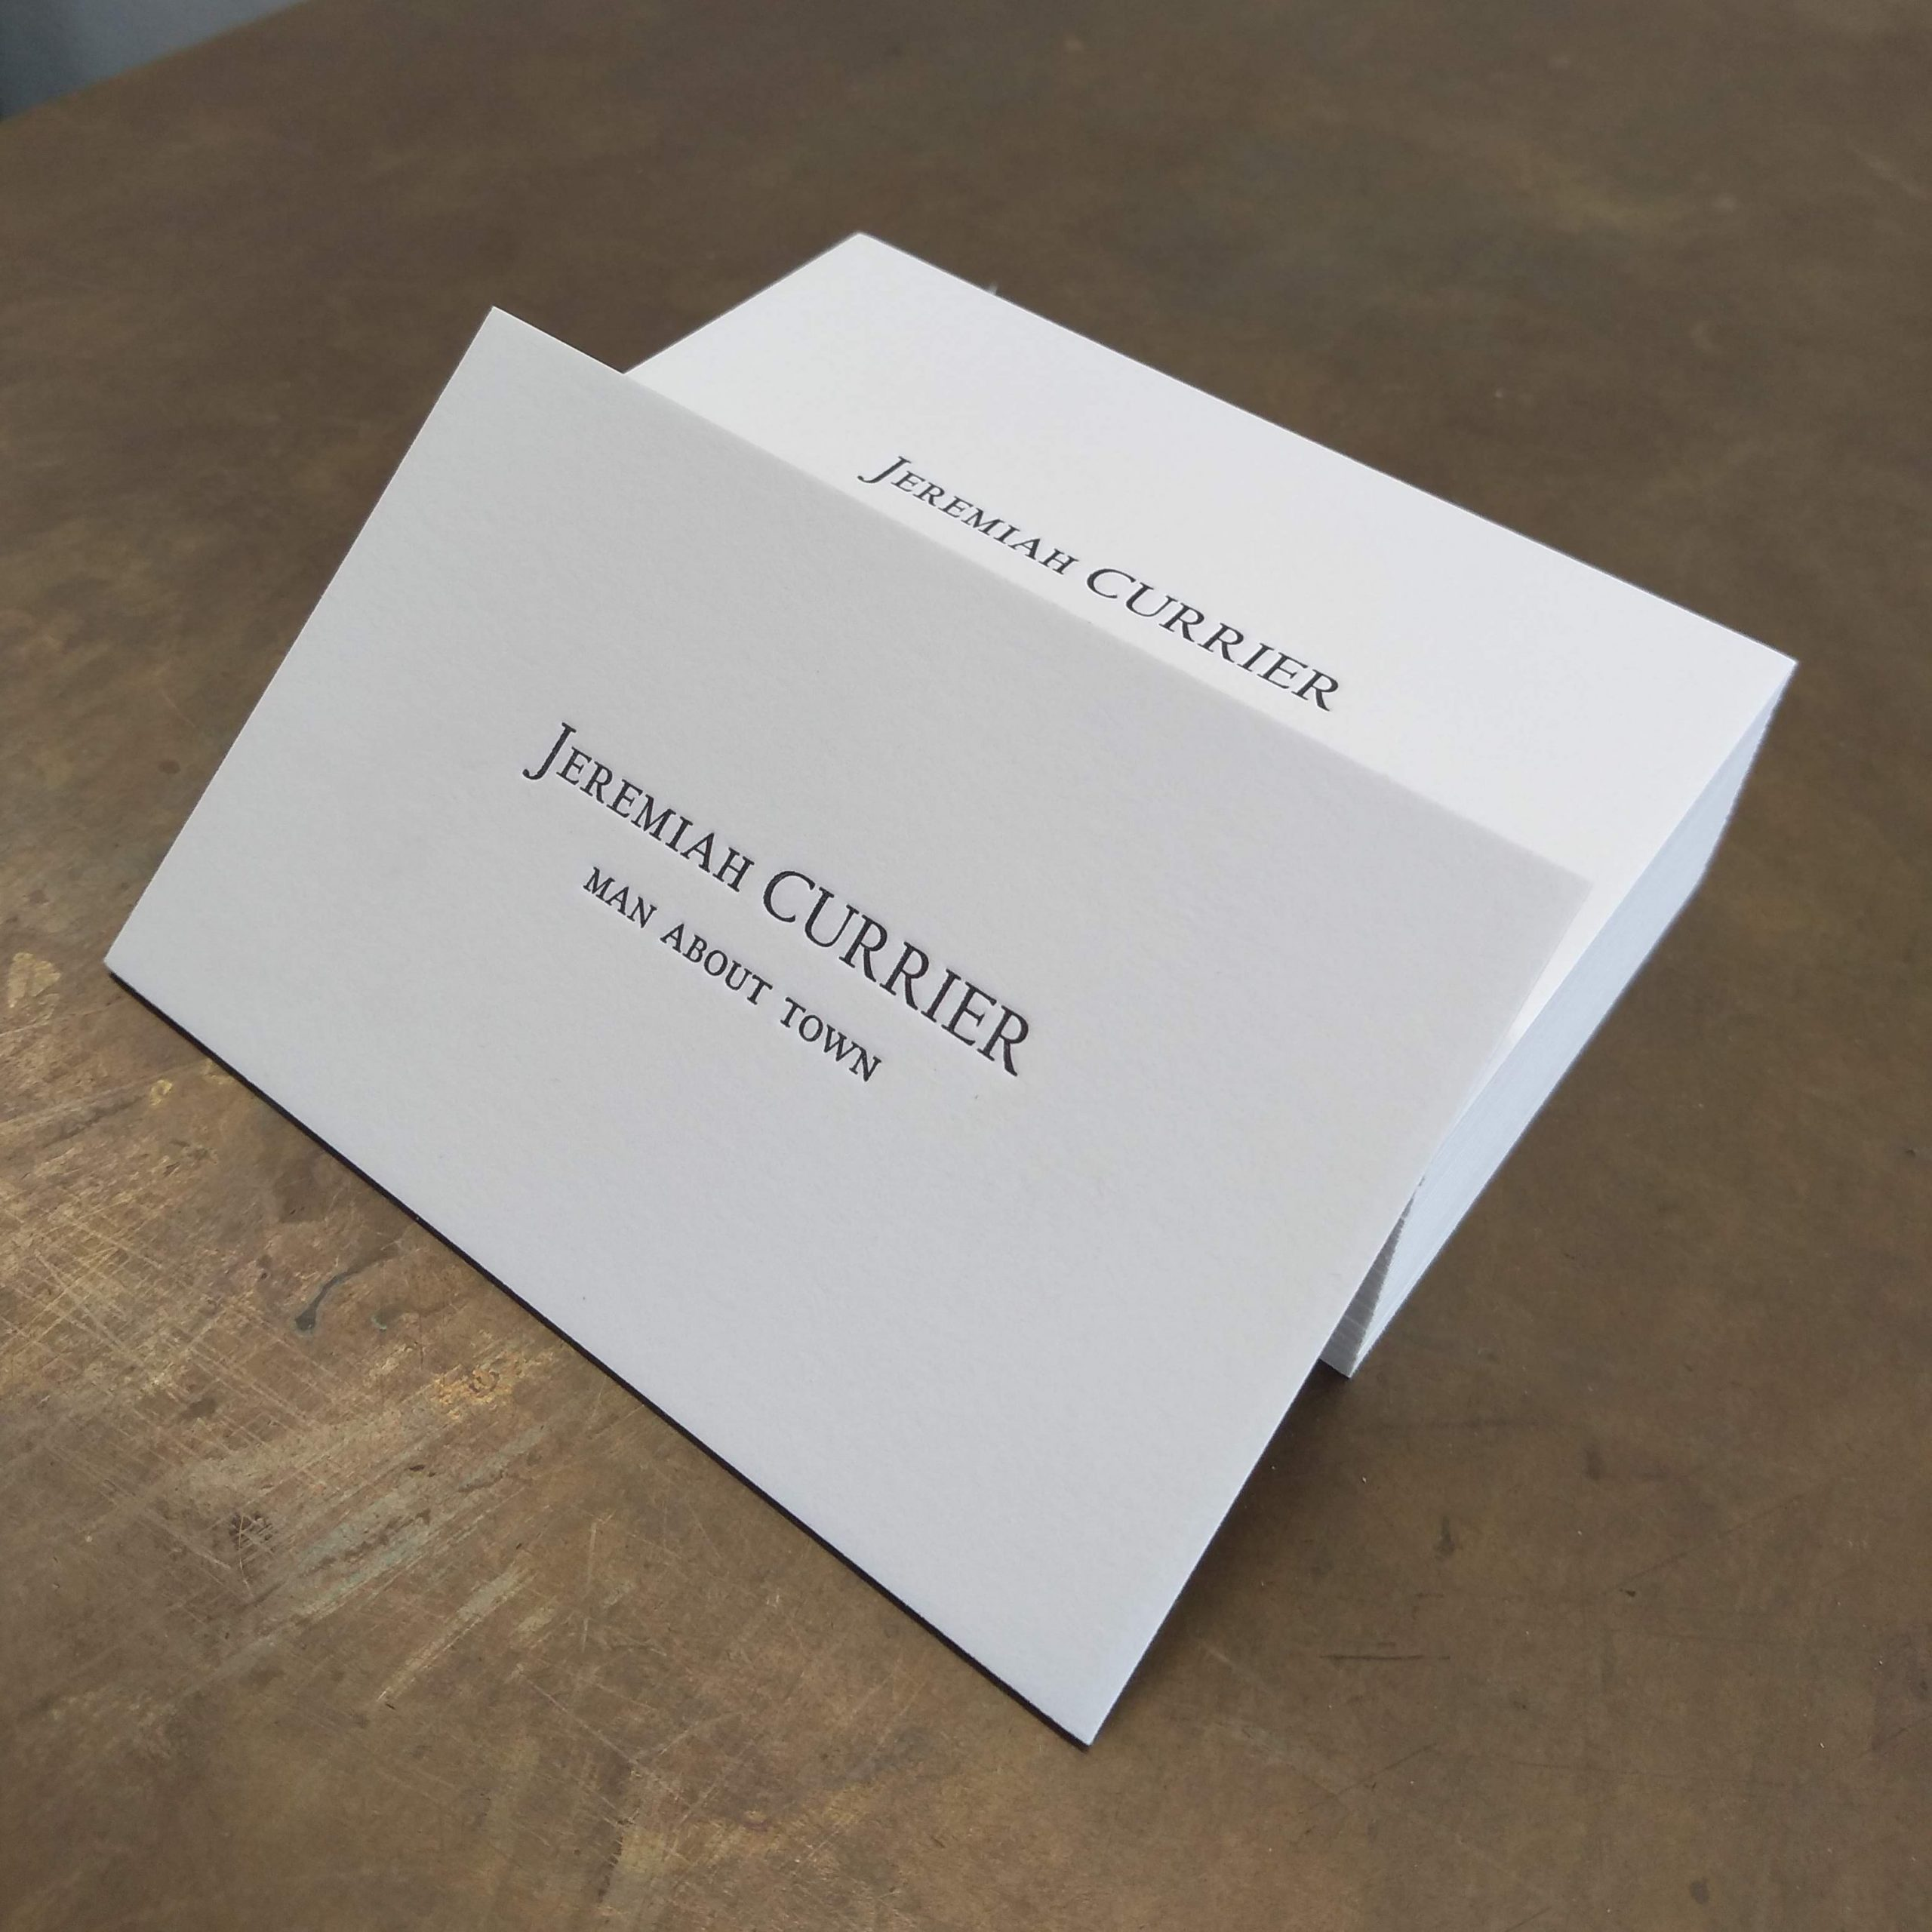 """Off-white letterpress business cards in the style of American Psycho; a single card rests against the stack, facing left. Reads """"Jeremiah CURRIER"""" and below, in smaller caps, """"MAN ABOUT TOWN."""""""